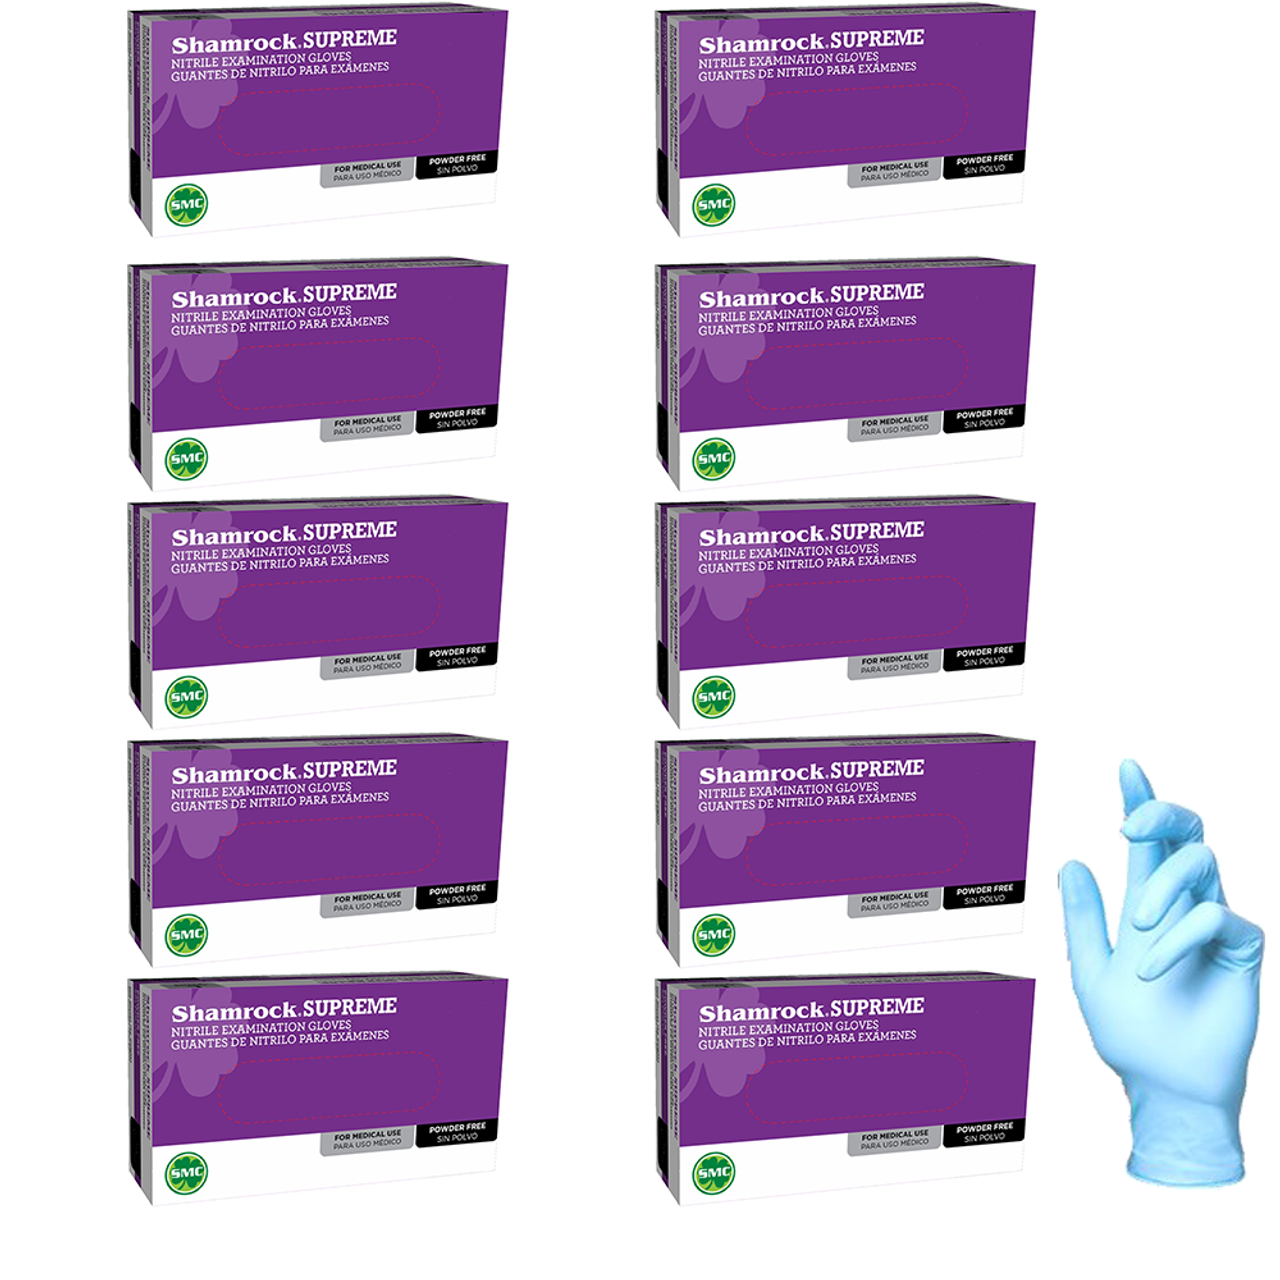 Shamrock Supreme Blue Nitrile Exam Gloves, Powder Free, Textured, Size Small, Case Pack of 950 Gloves